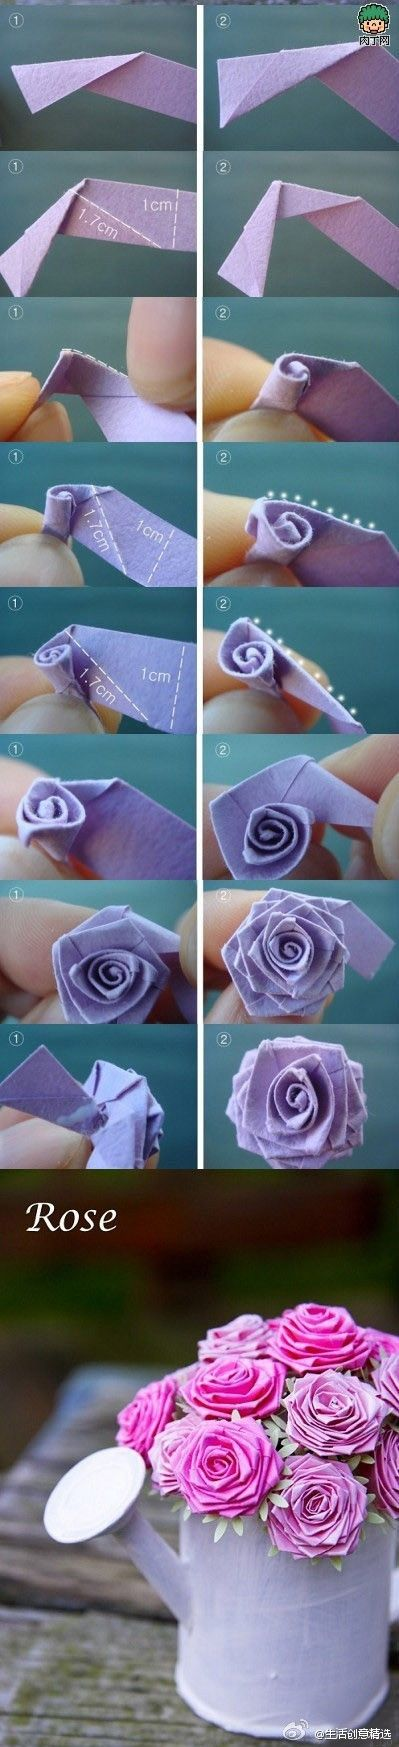 DIY paper rose flower origami